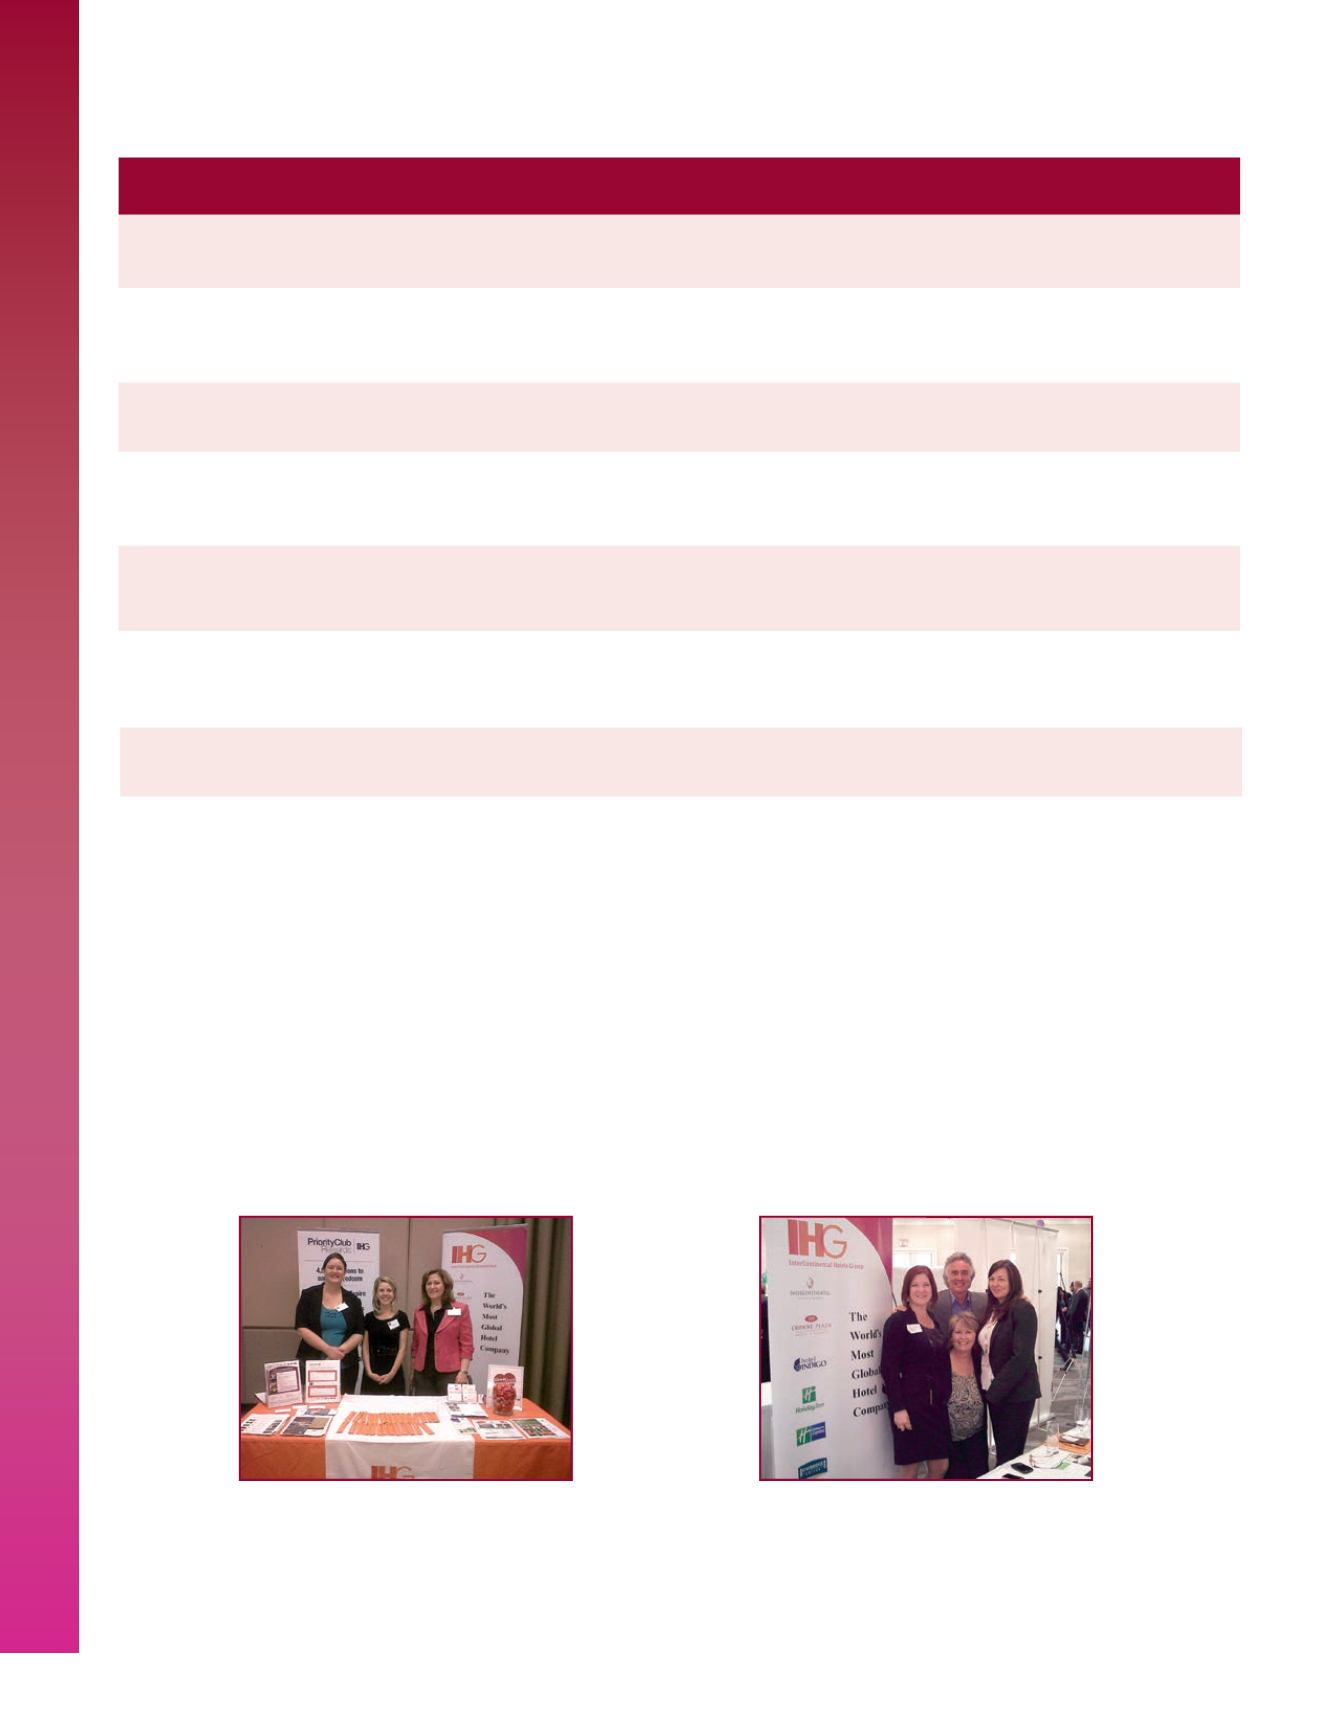 IHG SALES EBOOK 2013